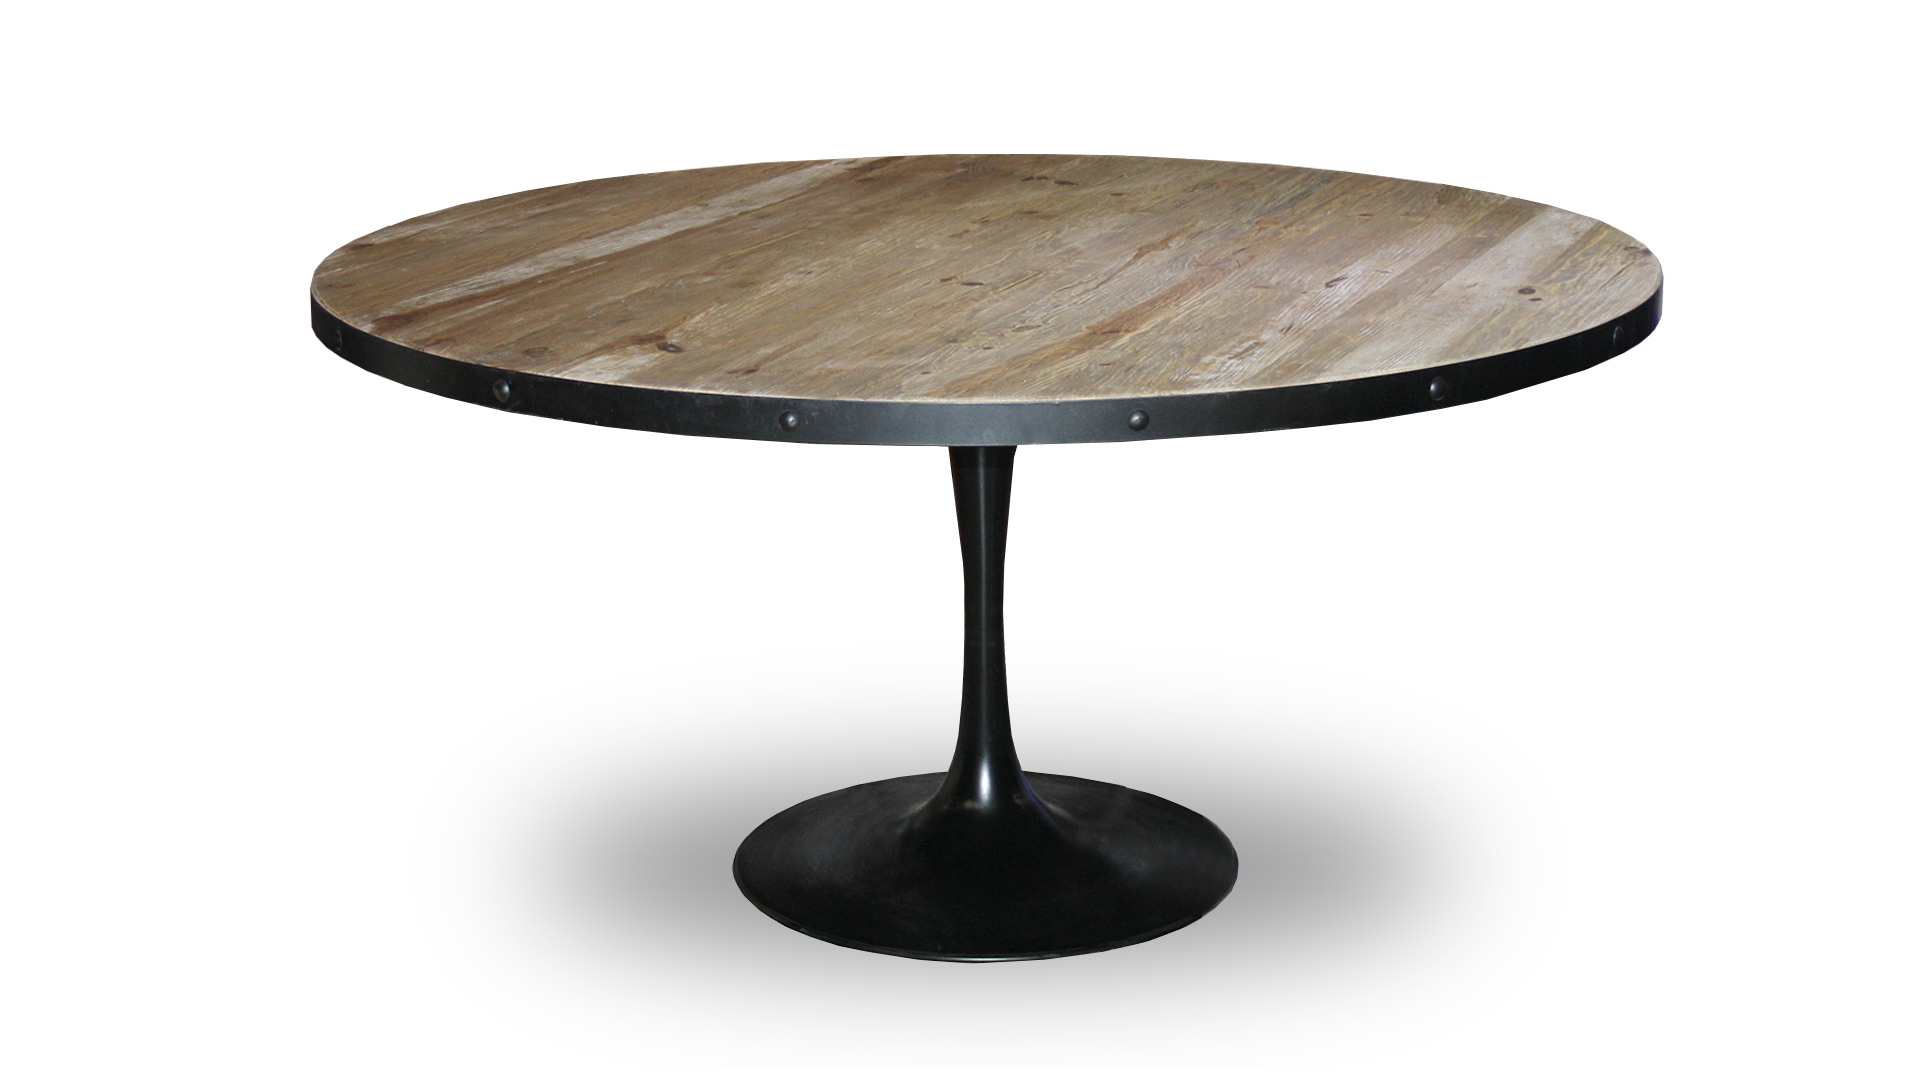 Le blog mobiliermoss cr er un coin repas convivial for Table ronde style industriel